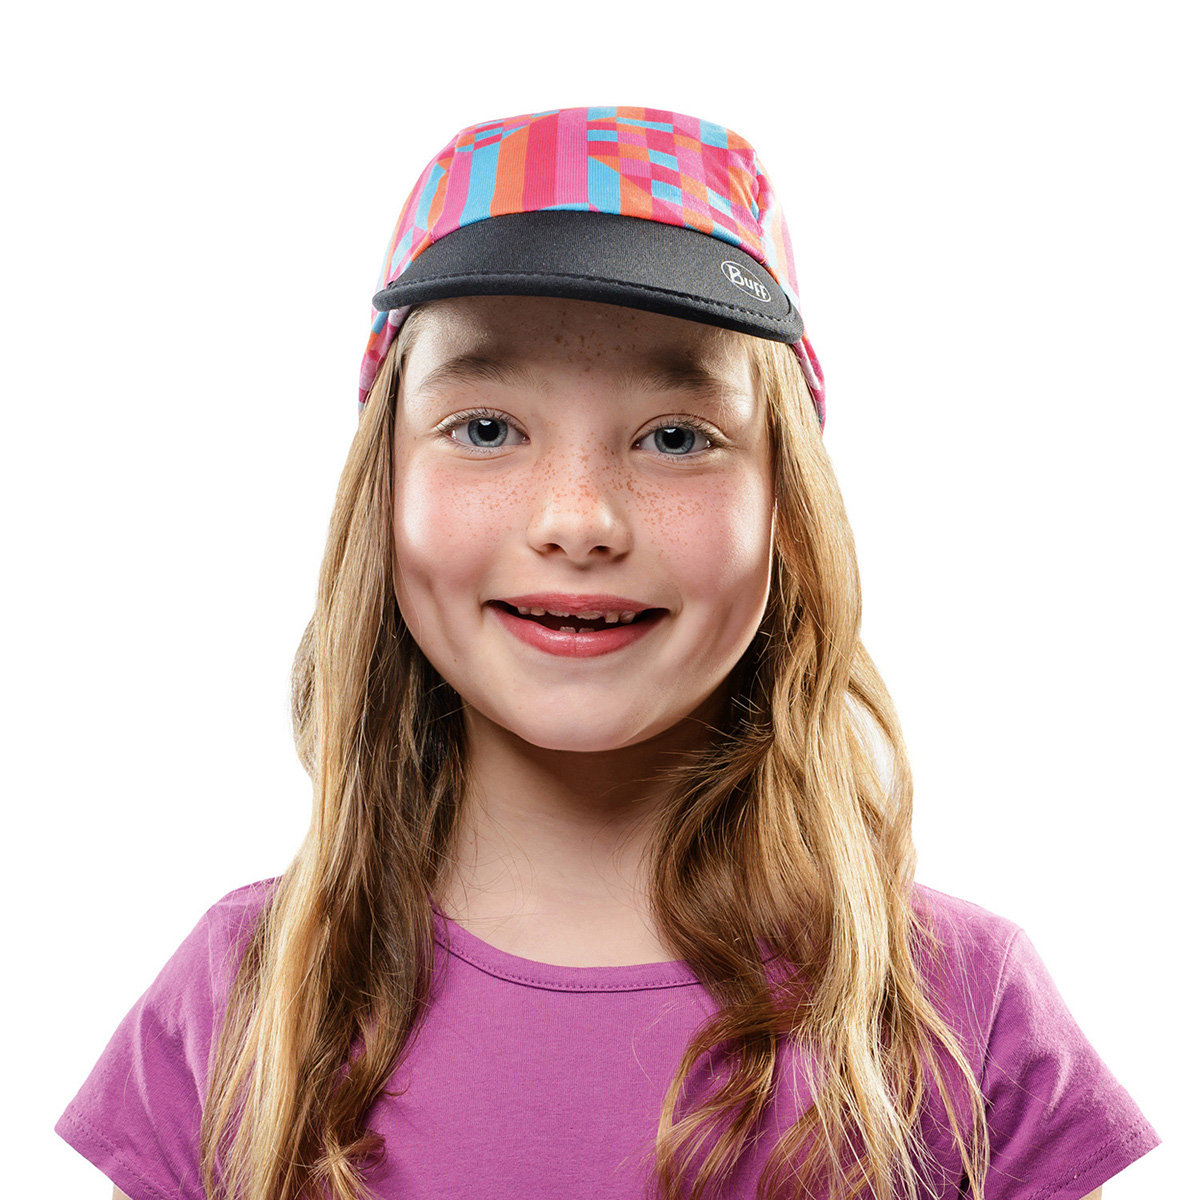 Кепка Buff CAP CHILD icy pink-multi Buff CAP CHILD icy pink-multi BU 117126.555.10.00